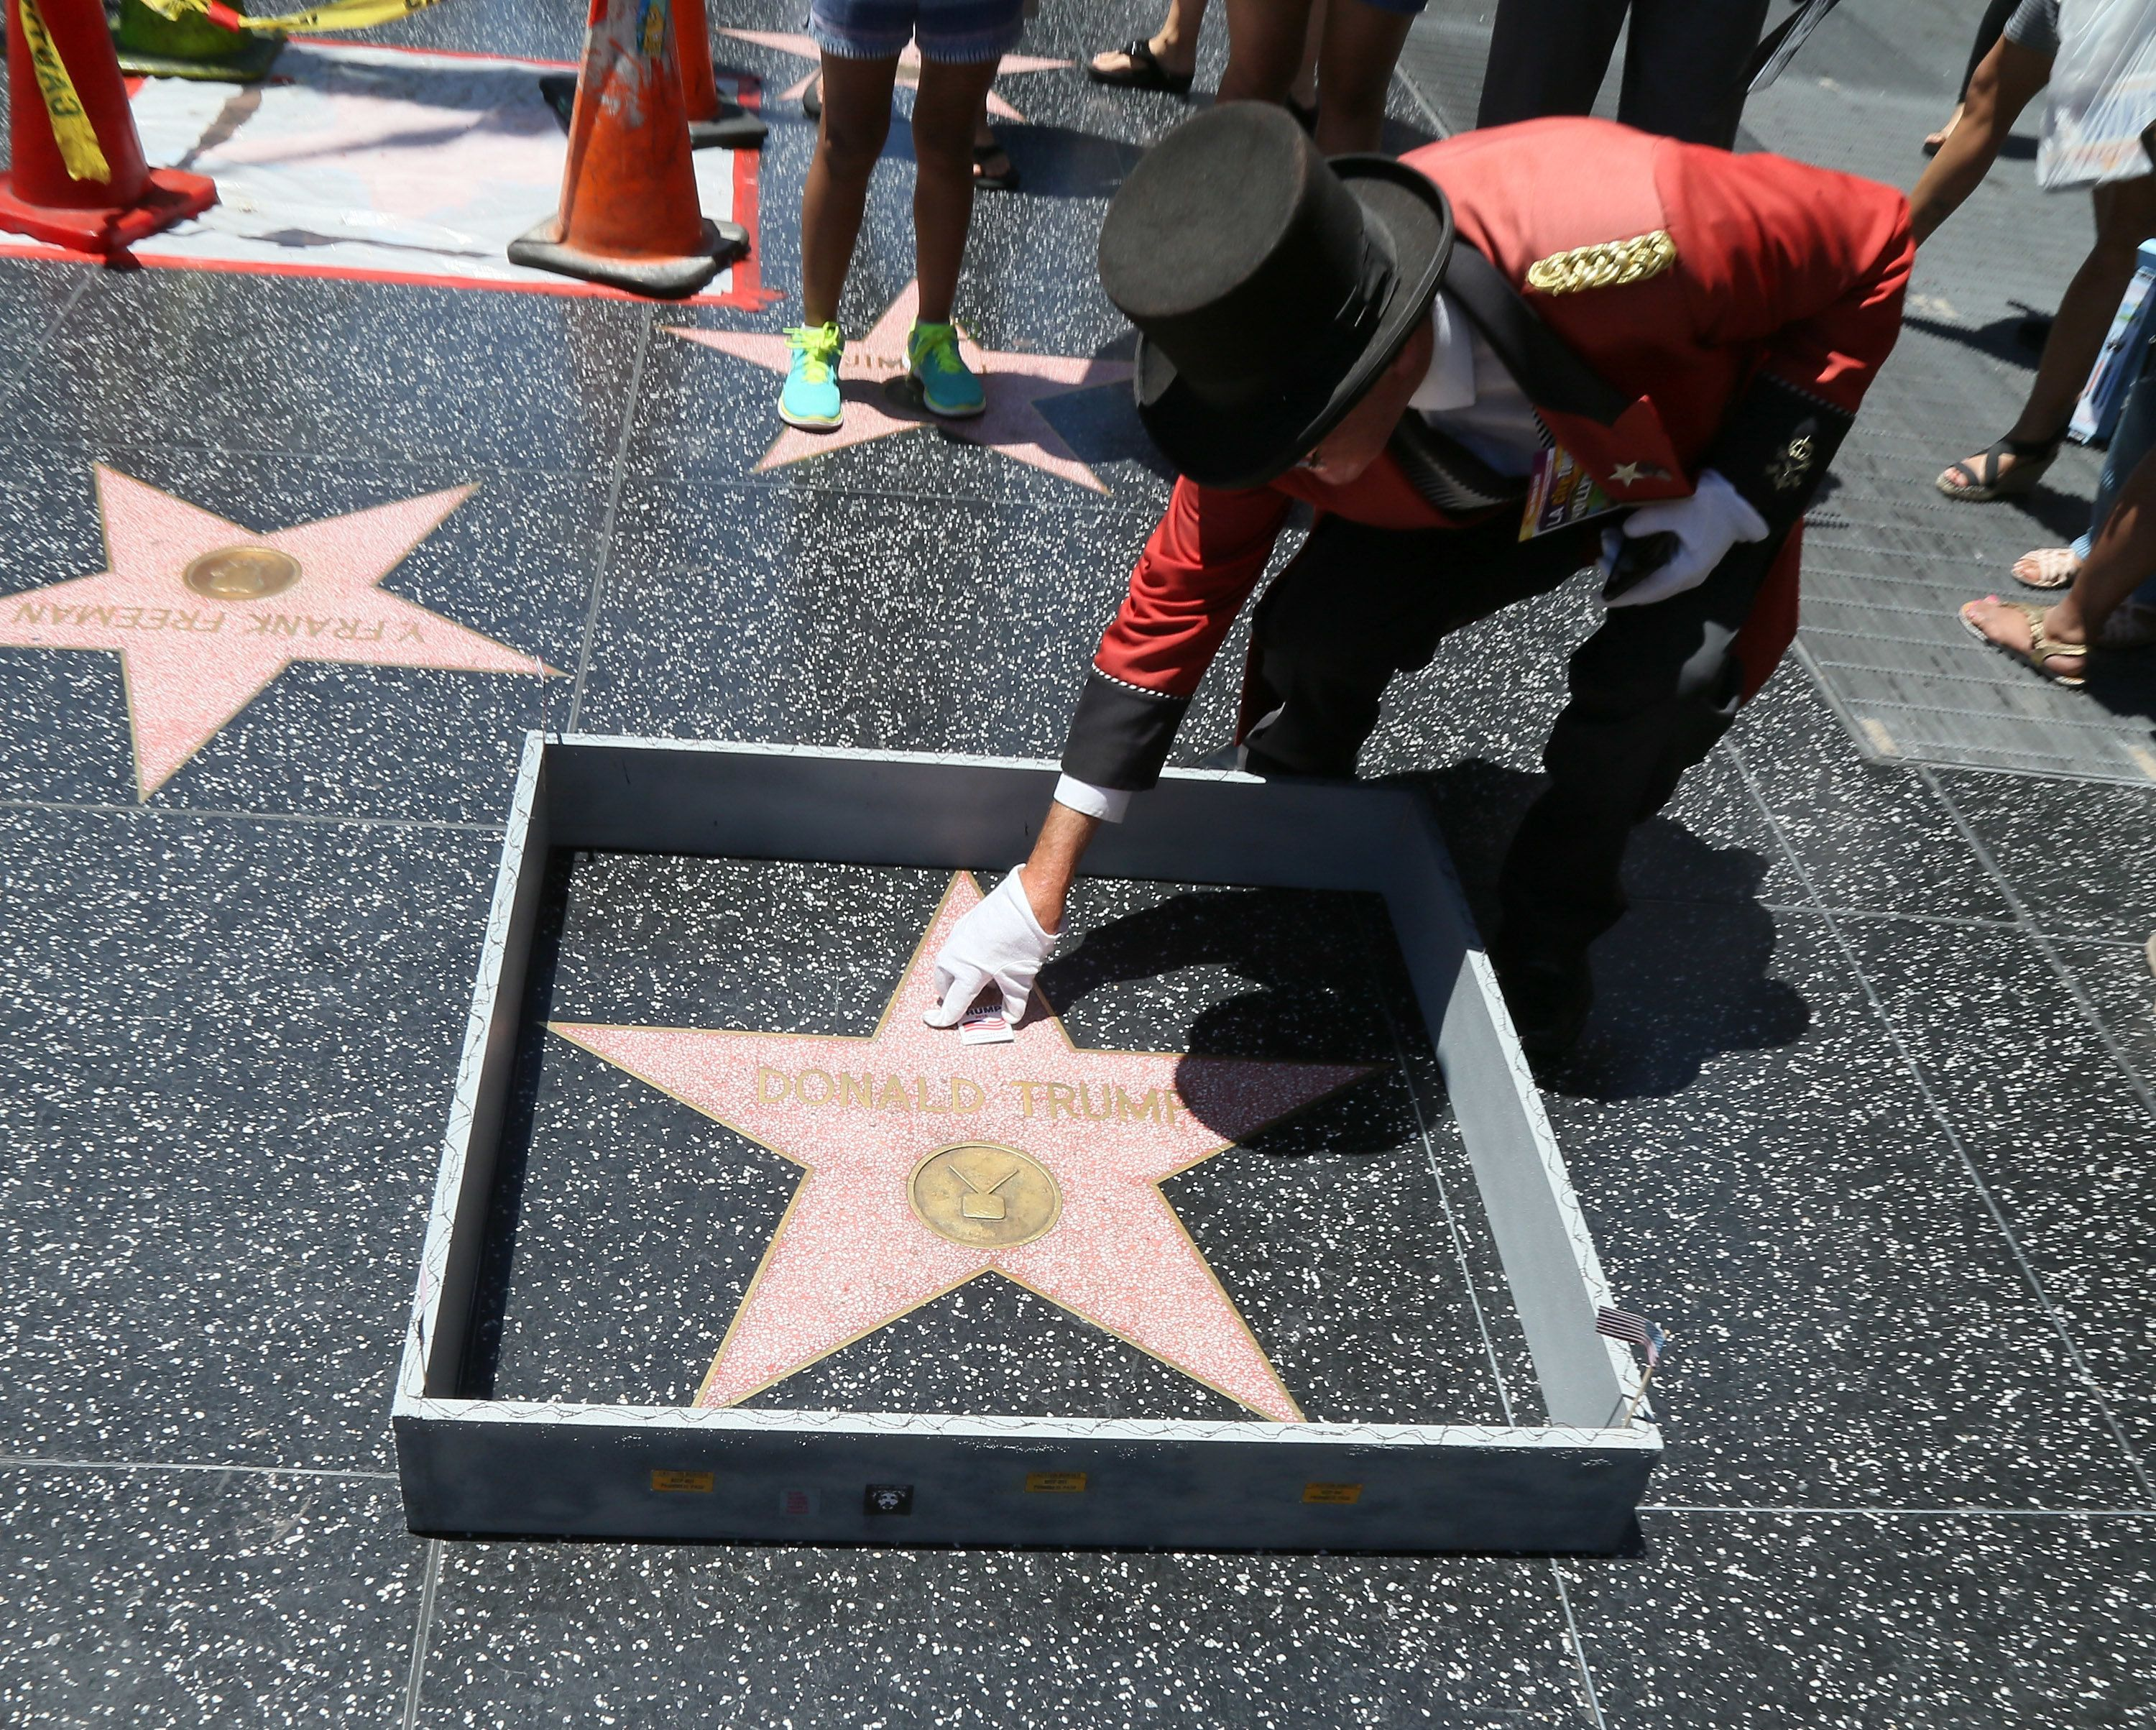 Trump's Hollywood Walk of Fame star placed behind bars by repeat offender